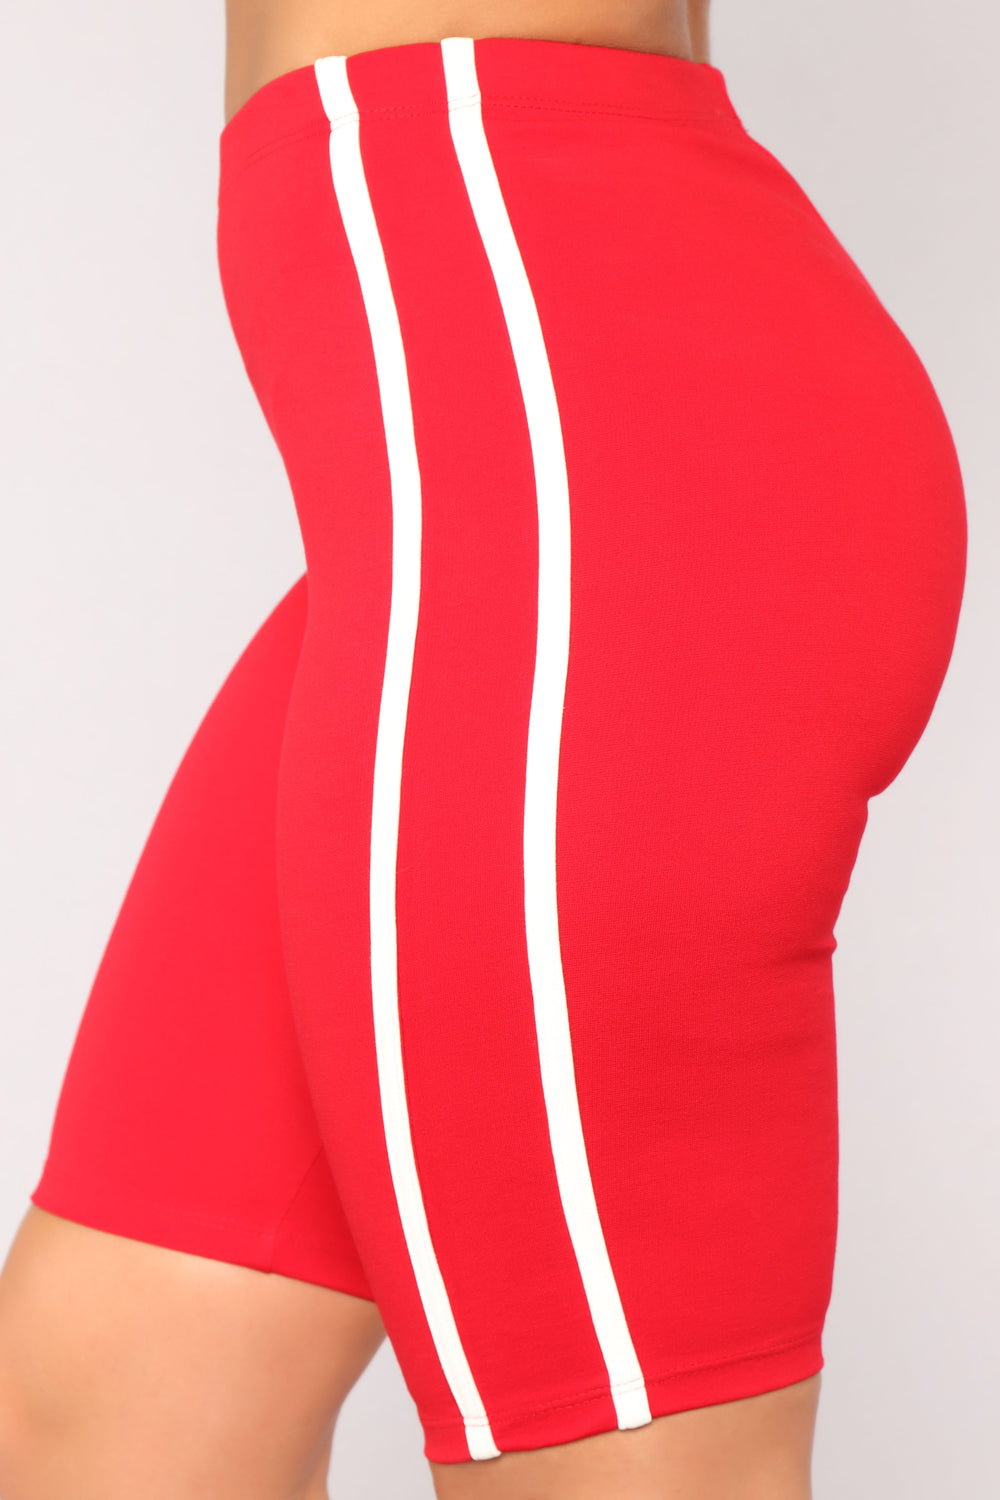 Tennis Champ Lounge Biker Shorts - Red